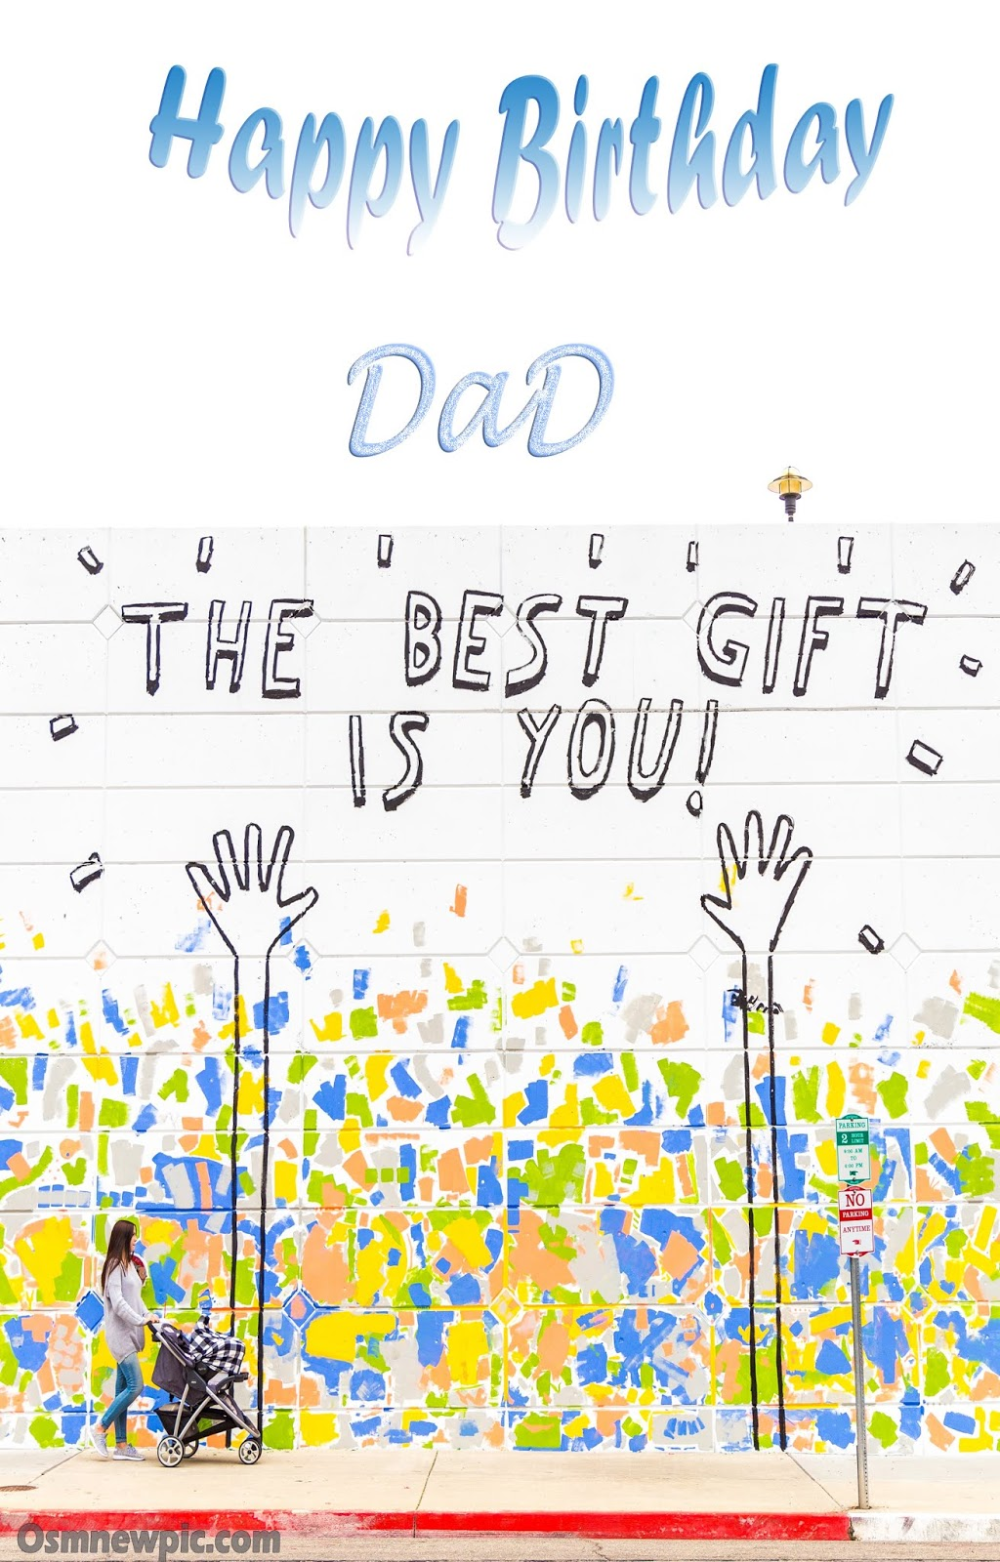 Happy Birthday Dad Images For Facebook Caring meaning